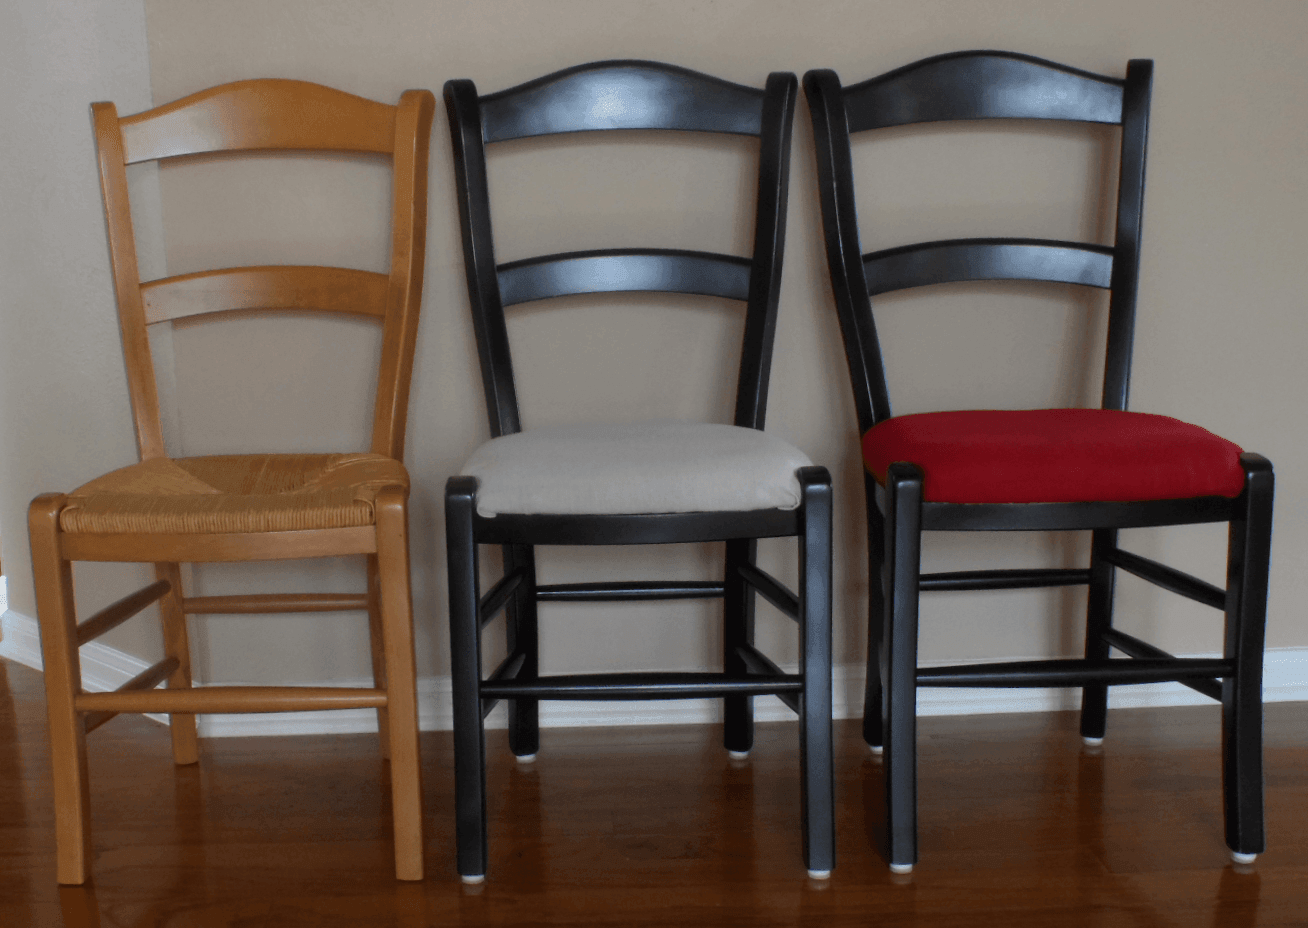 Cane Chair furniture makeover